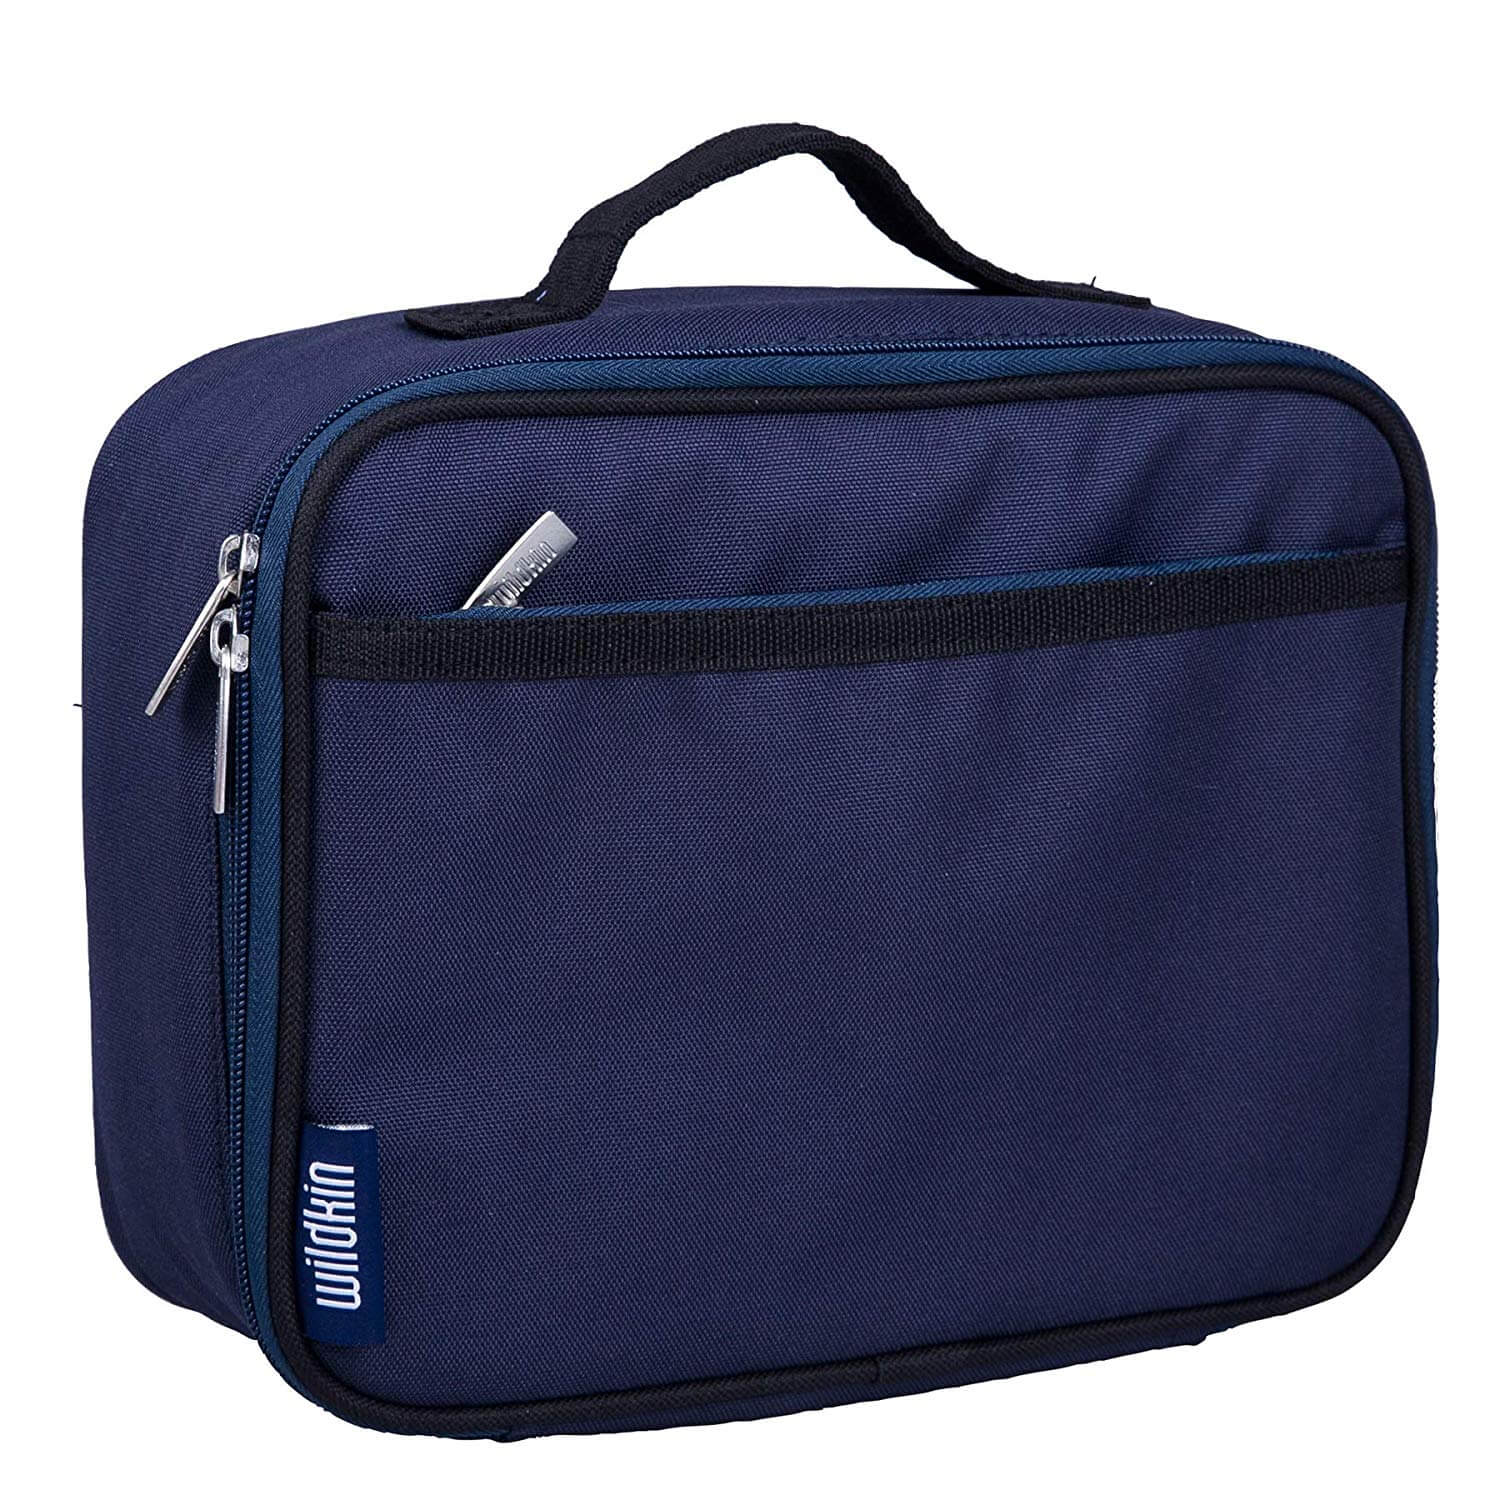 Wildkin Lunch Box, Whale Blue